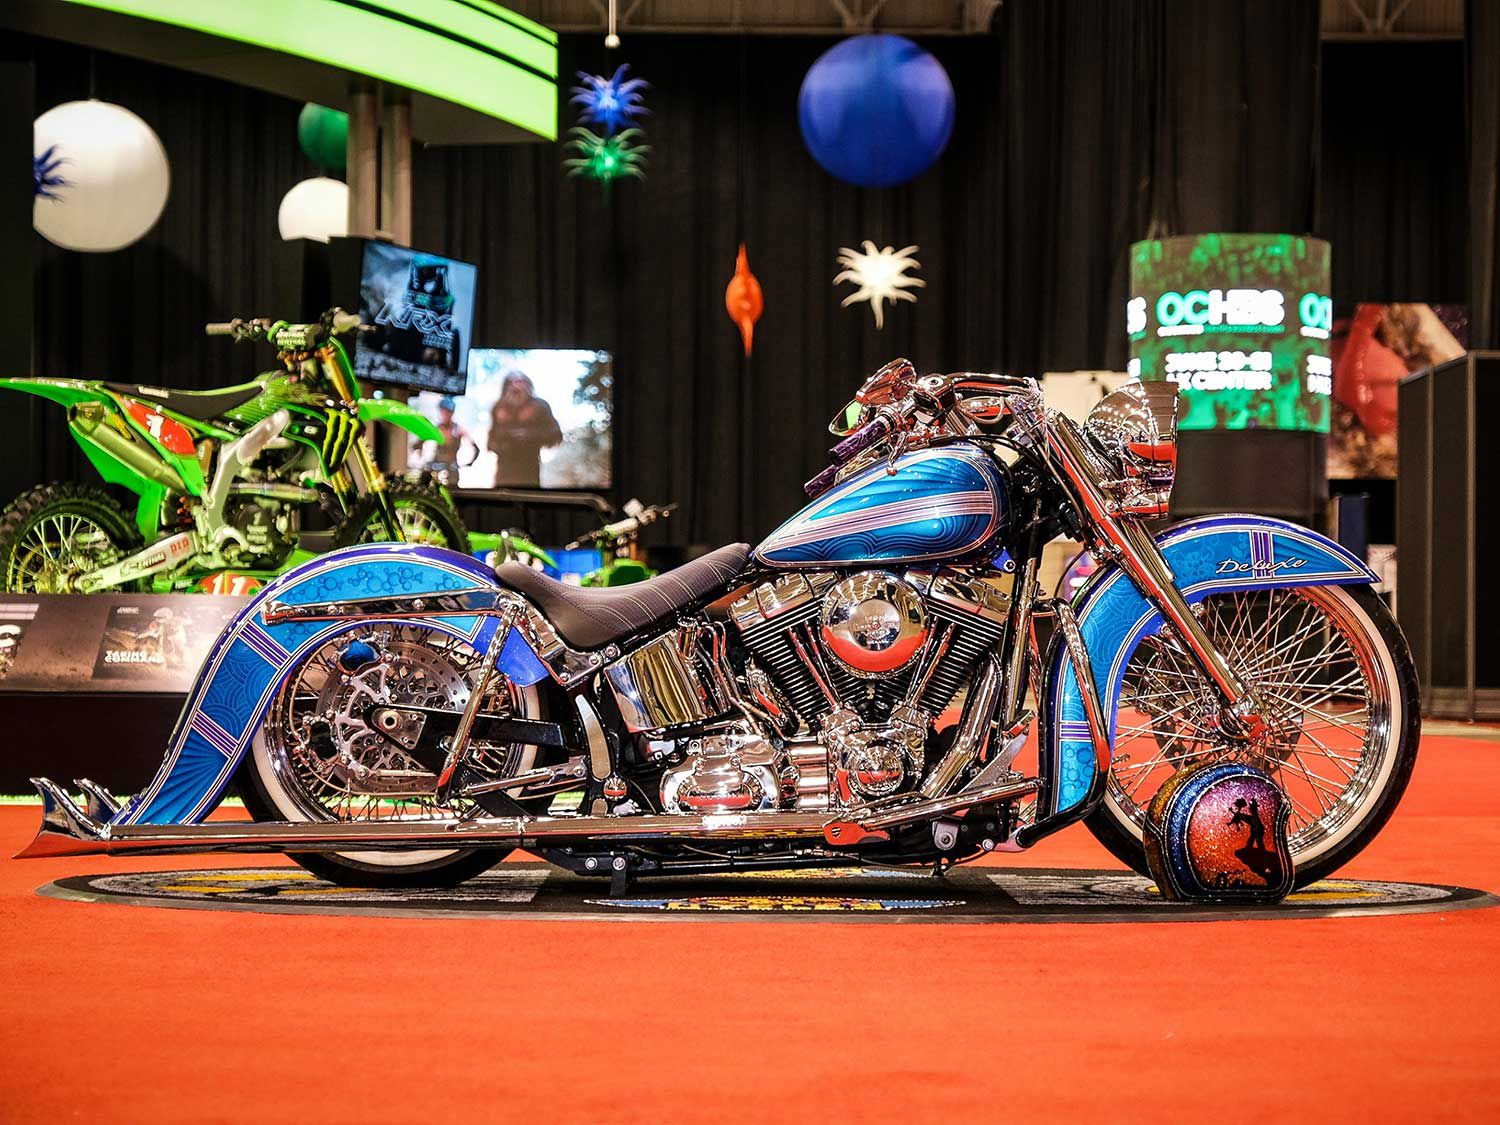 The runner-up was Brad Ritondaro's 2007 Harley-Davidson Softail Deluxe, painted by FlameThrower Customs. Check out those stretched fenders, beach bars, and air ride.